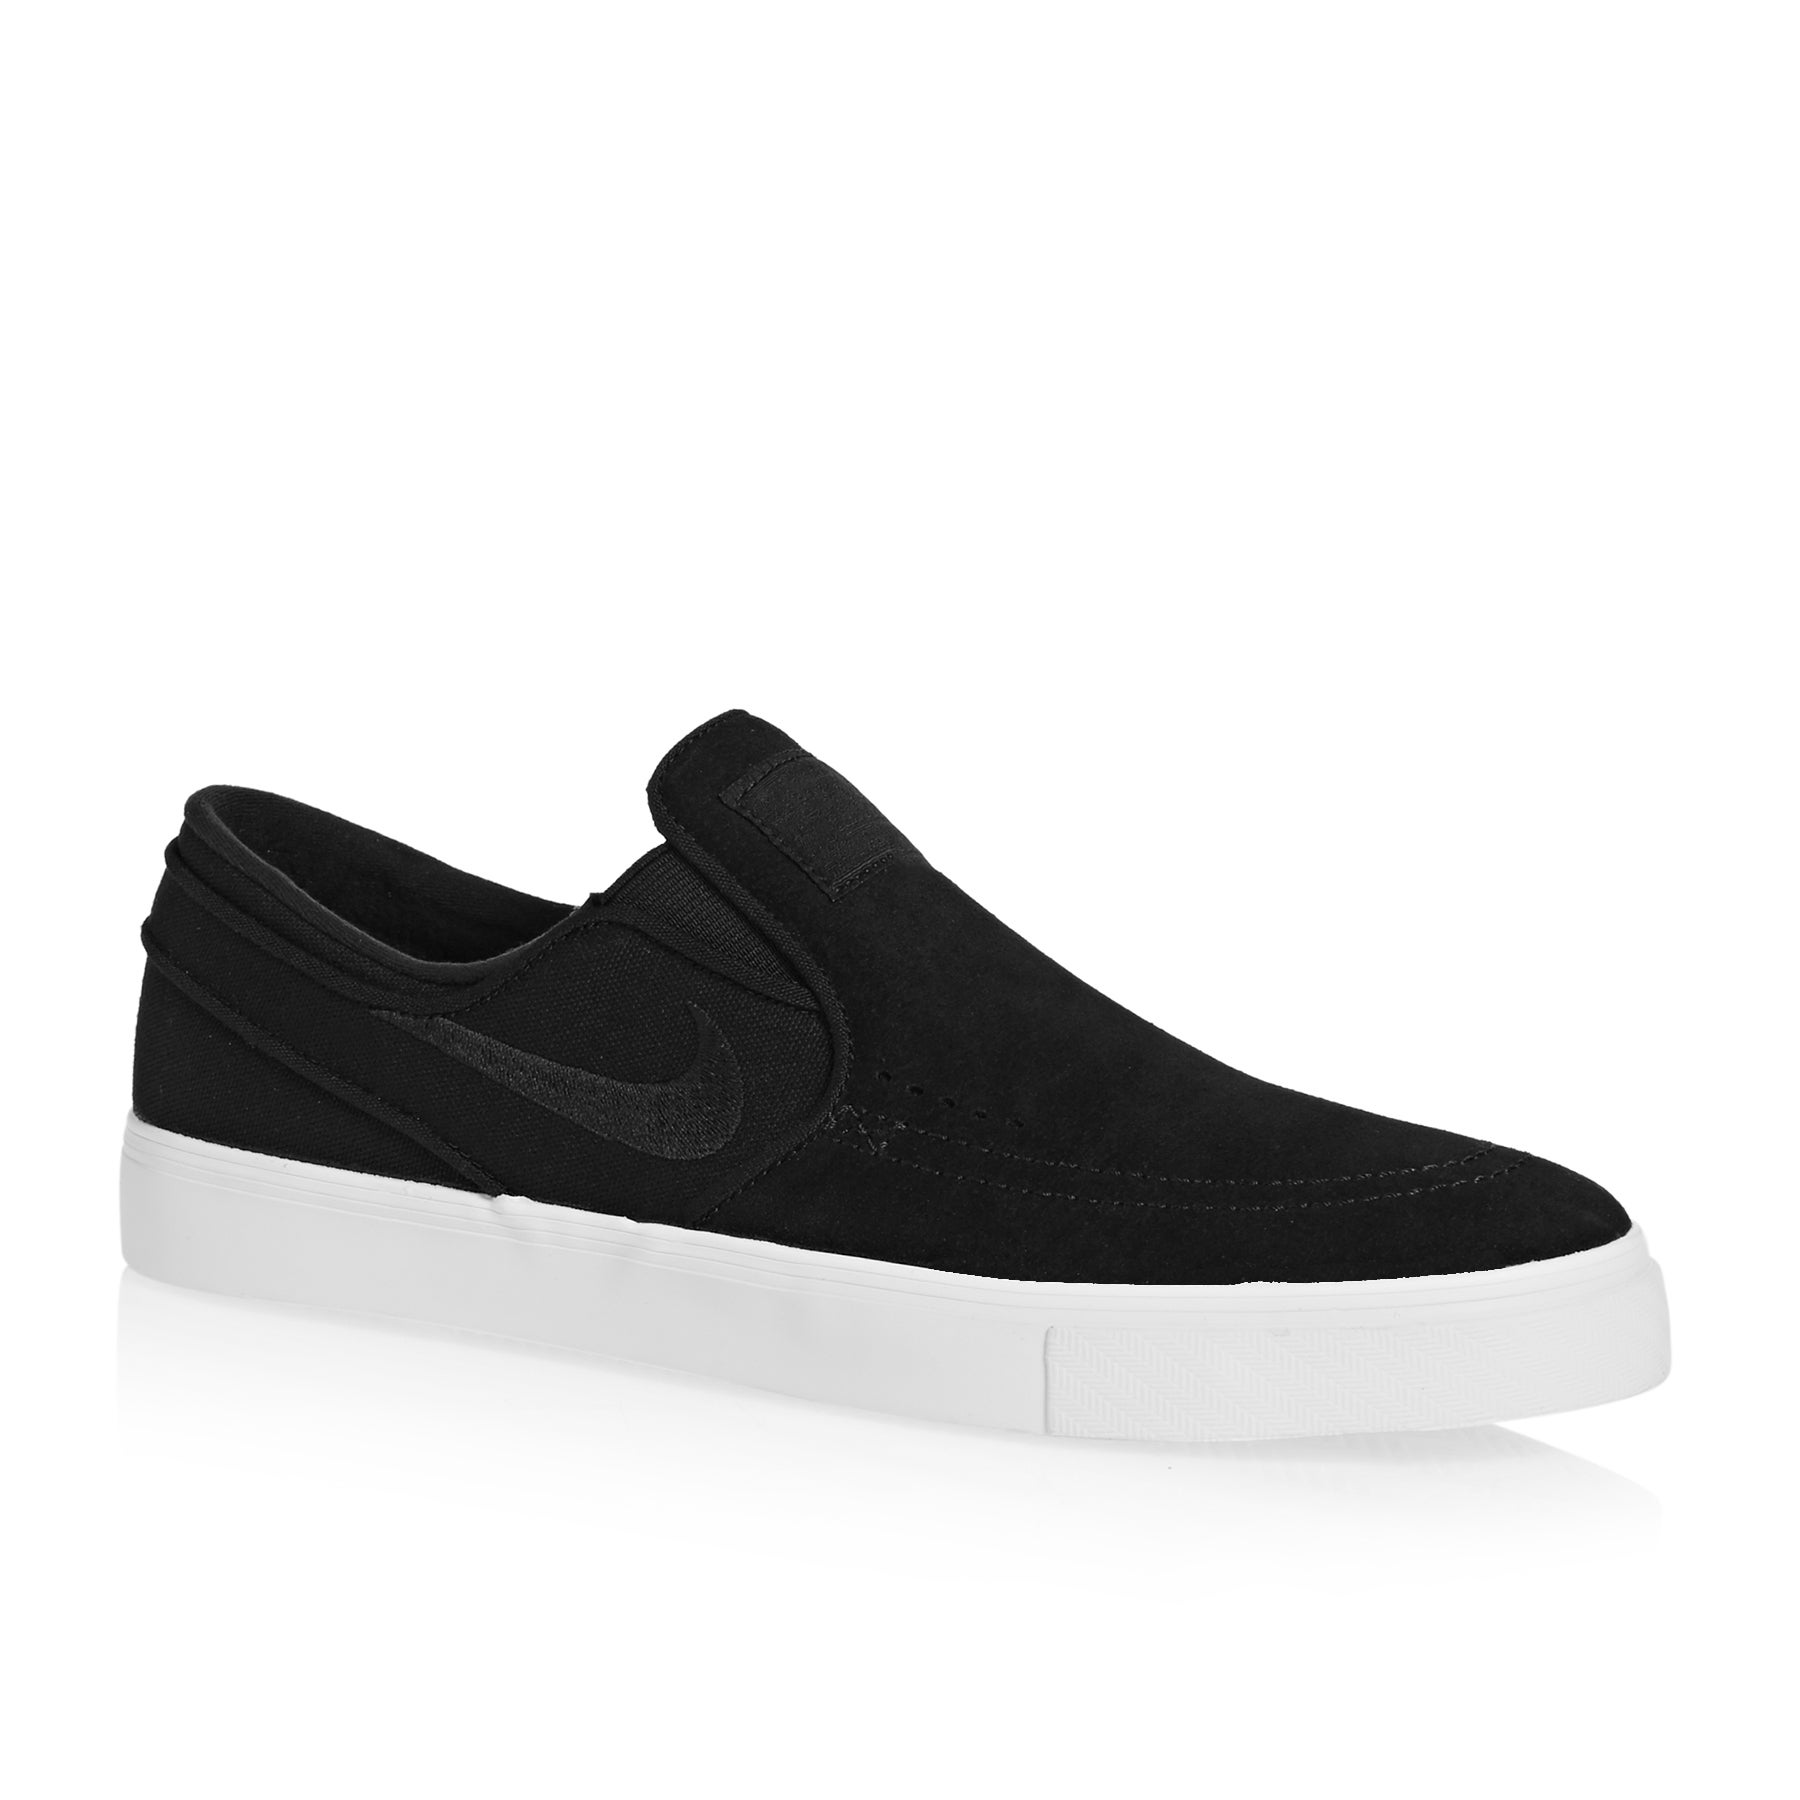 best loved 2991f 13833 Nike SB Zoom Stefan Janoski Slip On Shoes available from Surfdome